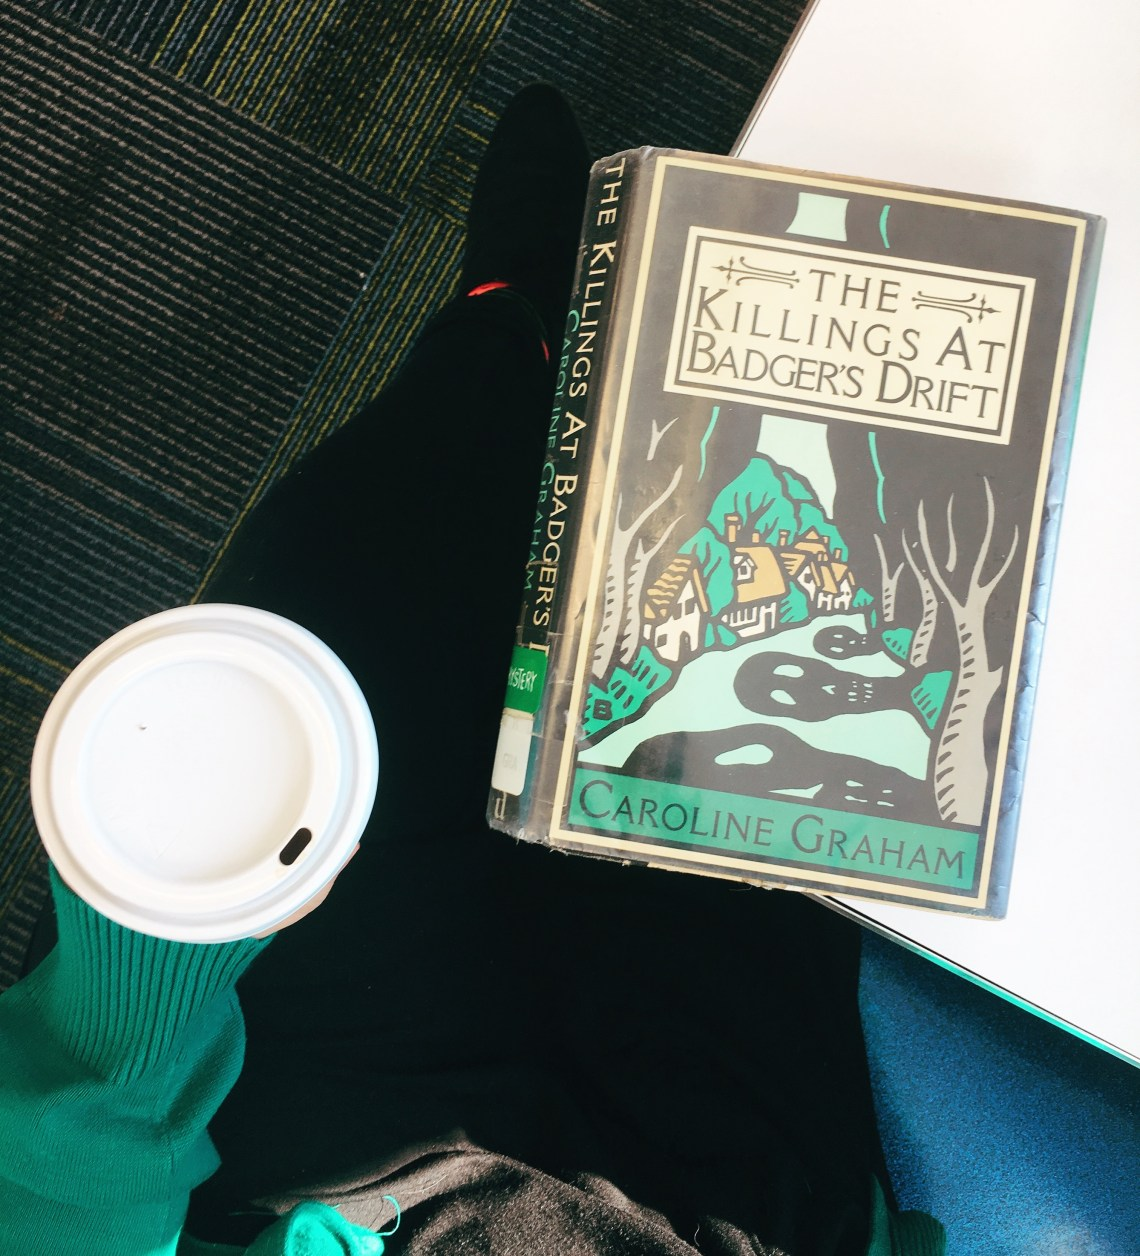 Shot of me holding coffee while a copy of the book lies on a tabletop